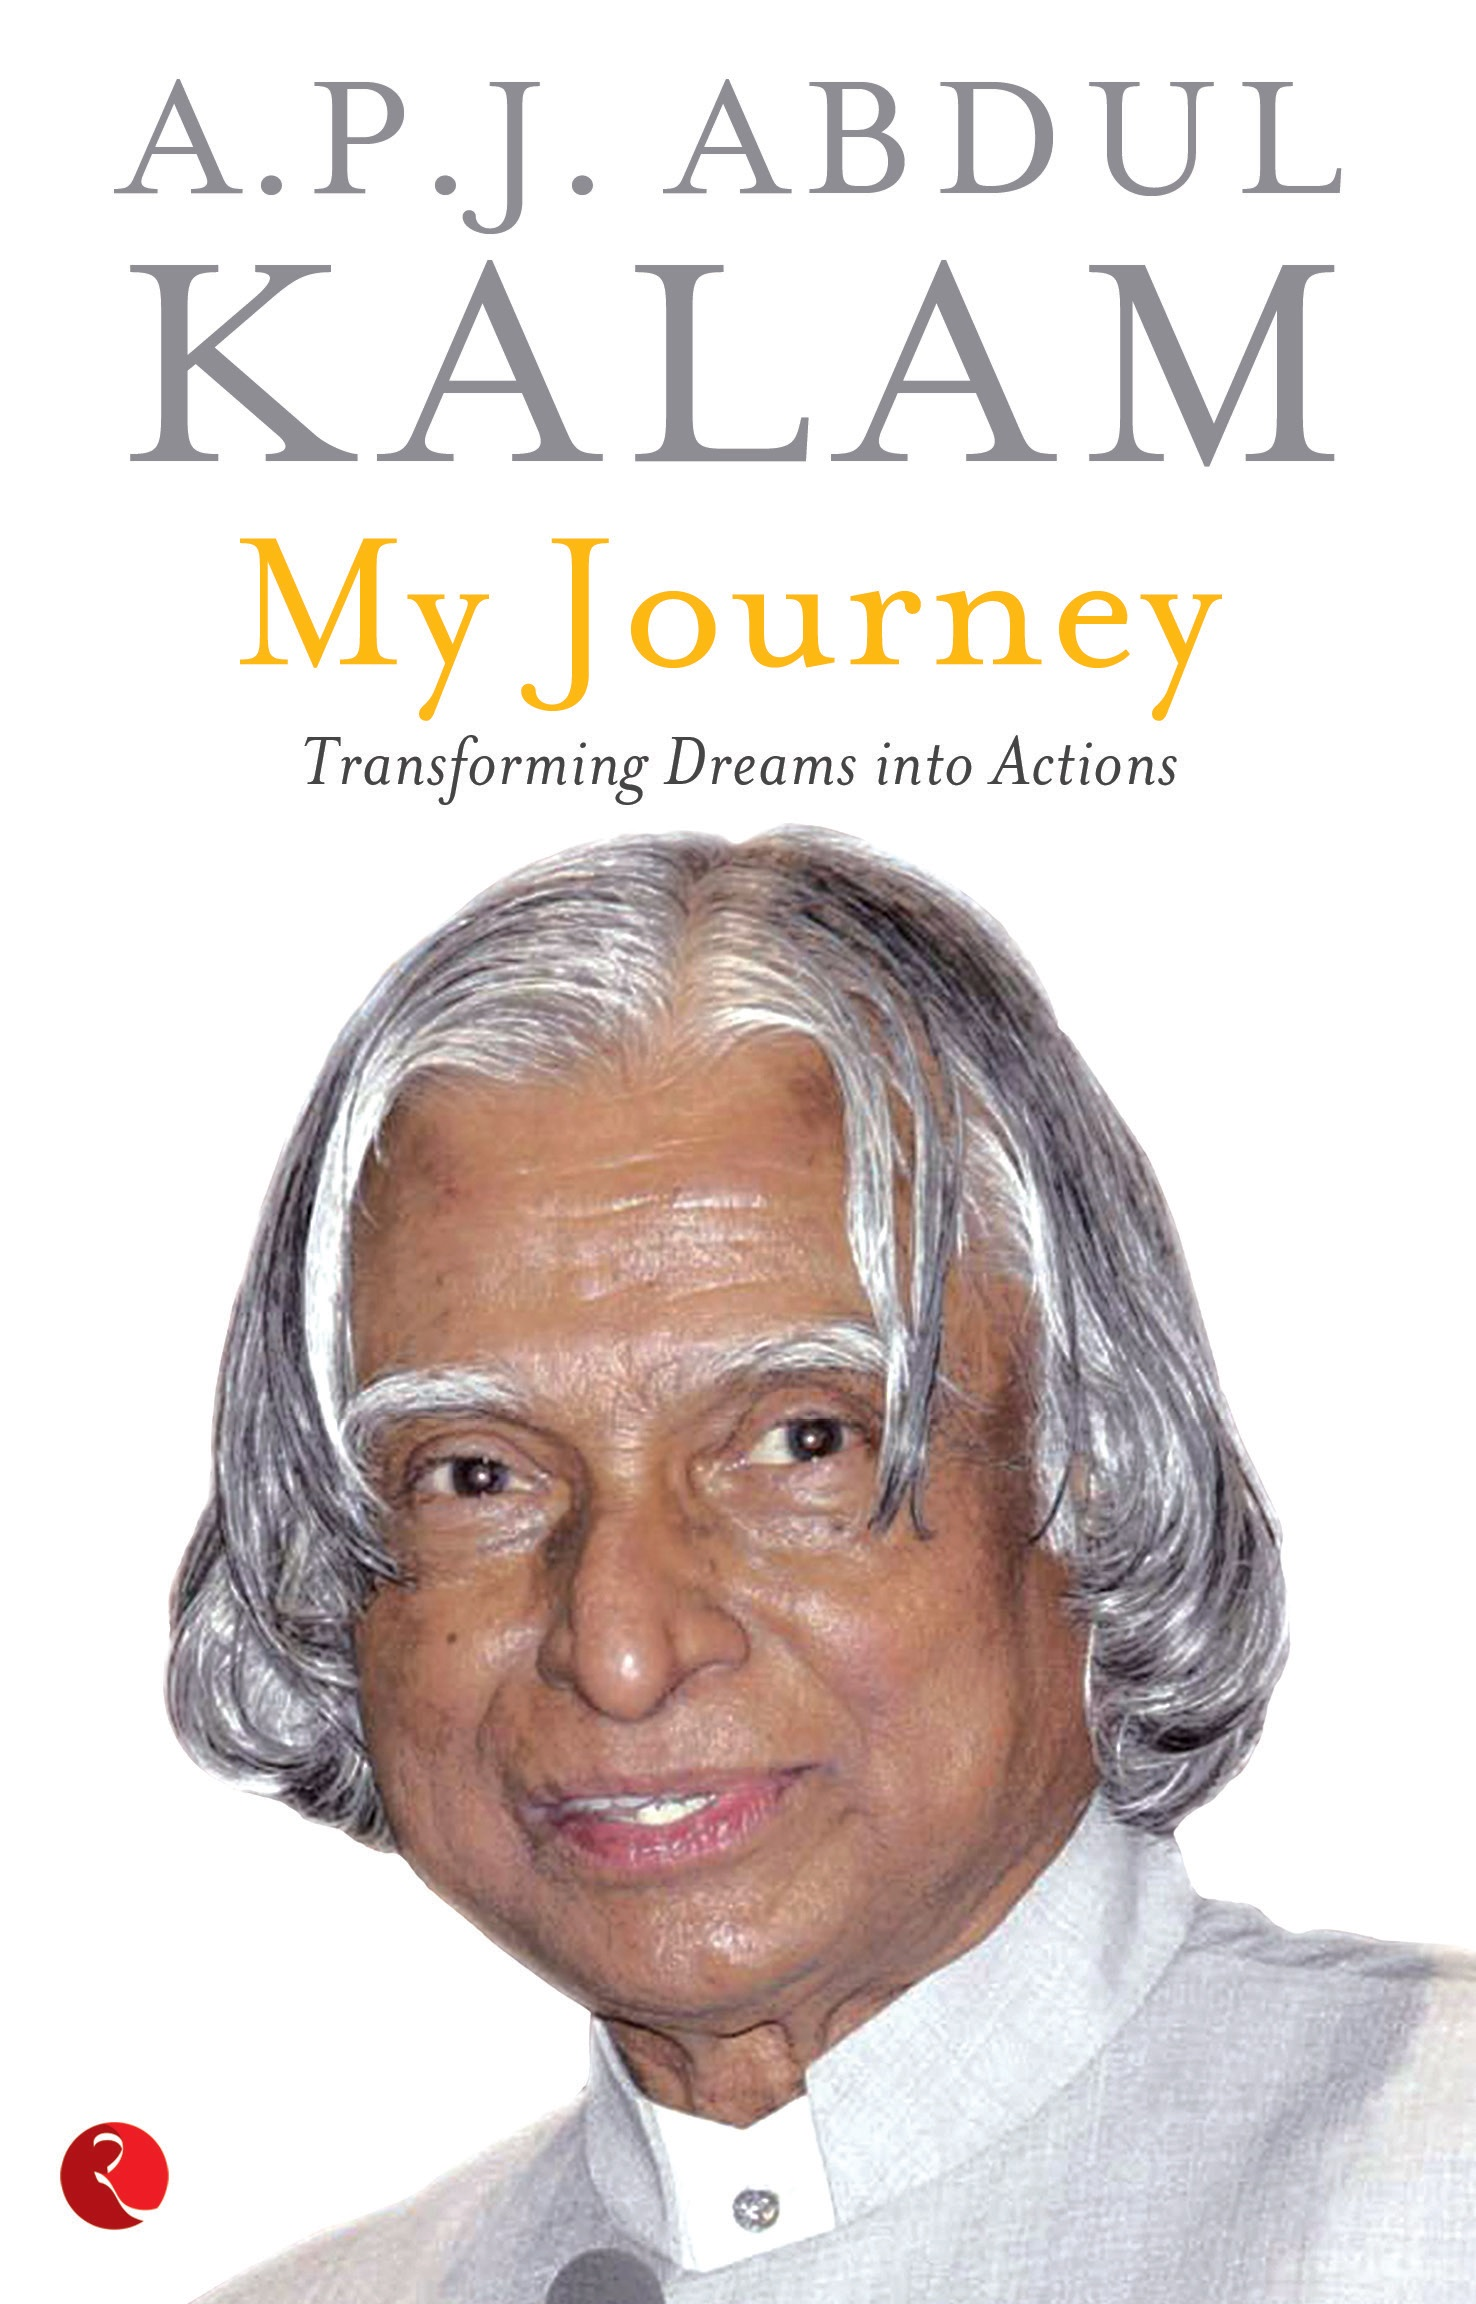 my journey transforming dreams into actions rupa publications my journey transforming dreams into actions by a p j abdul kalam